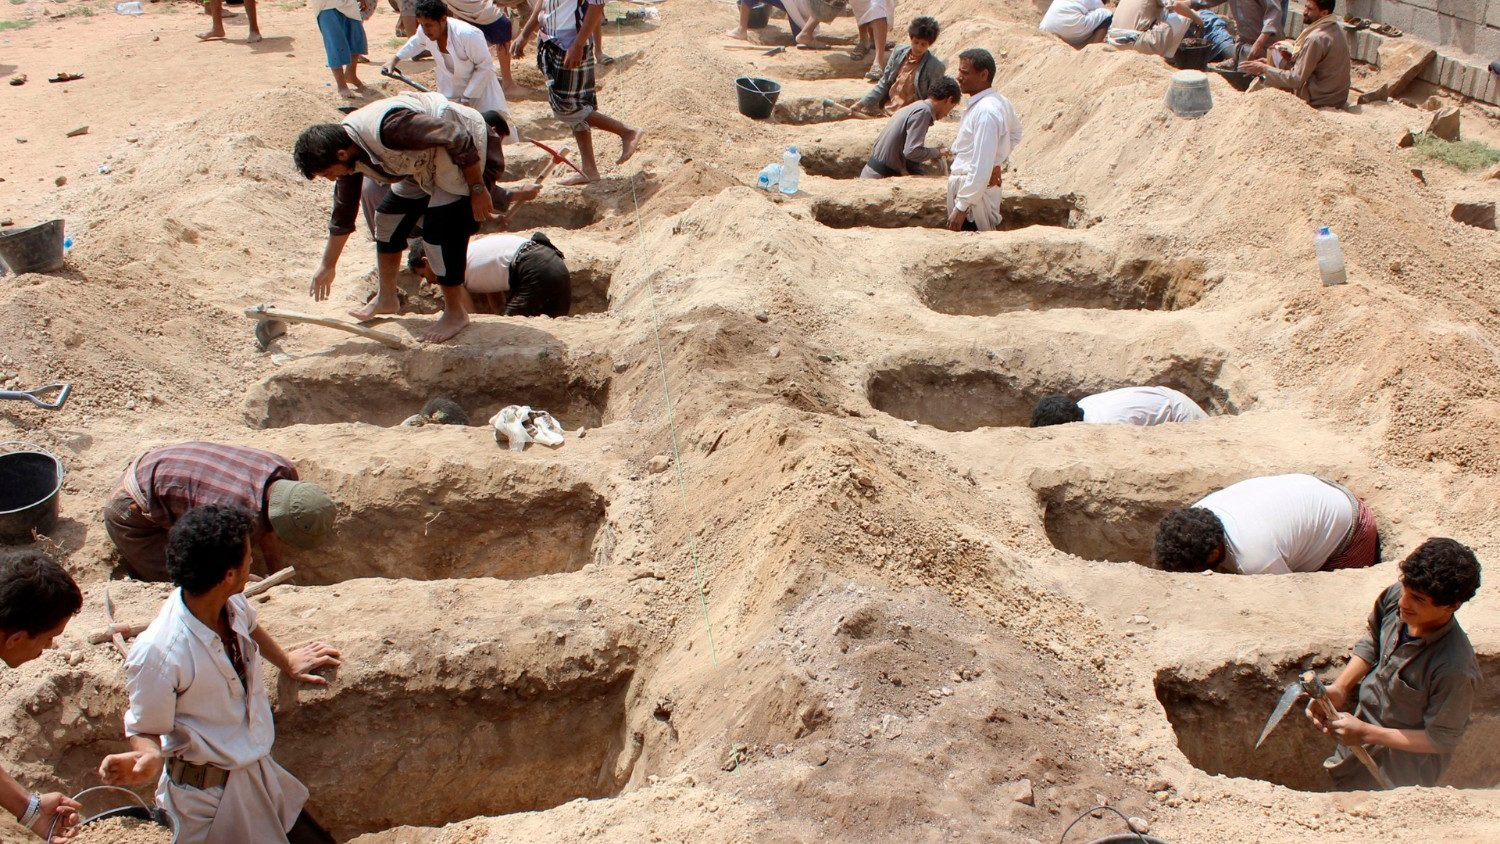 The War Nerd: How Many Dead Yemeni Nobodies Does It Take To Equal 1 WaPo Contributor?